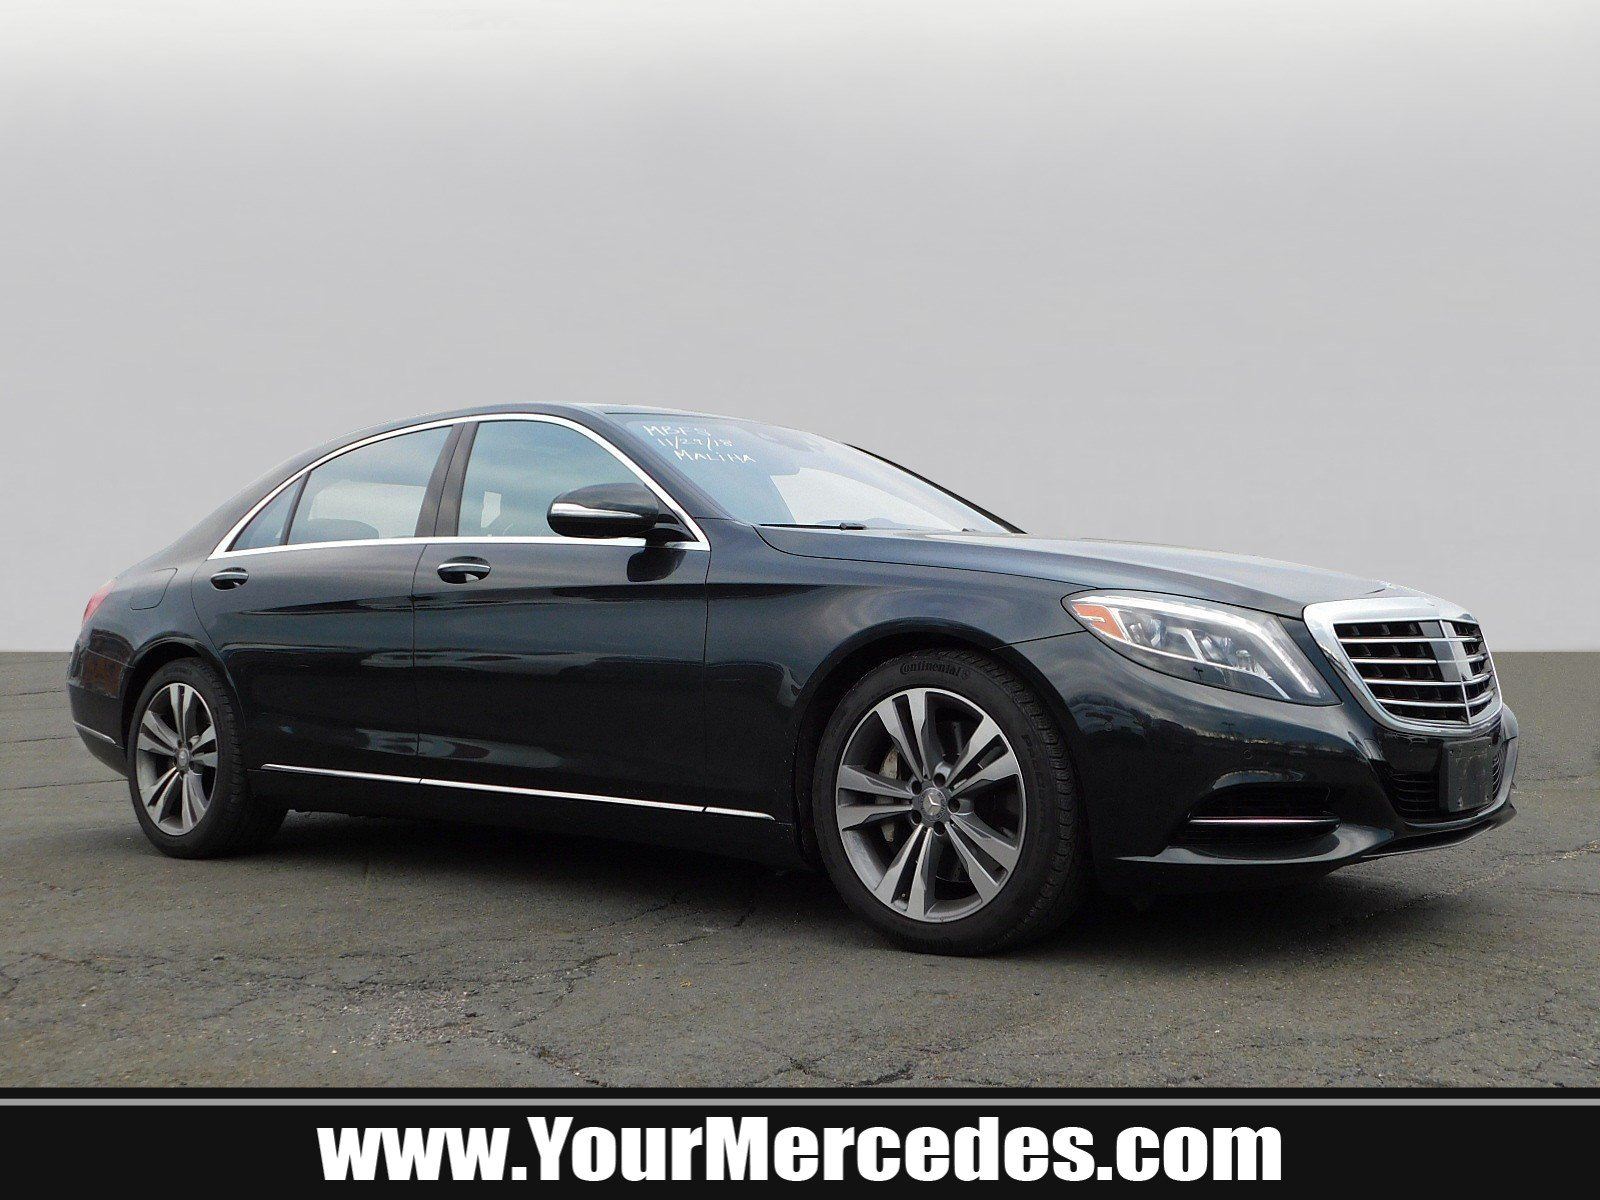 Certified Pre Owned 2015 Mercedes Benz S Class S 550 SEDAN in Fort